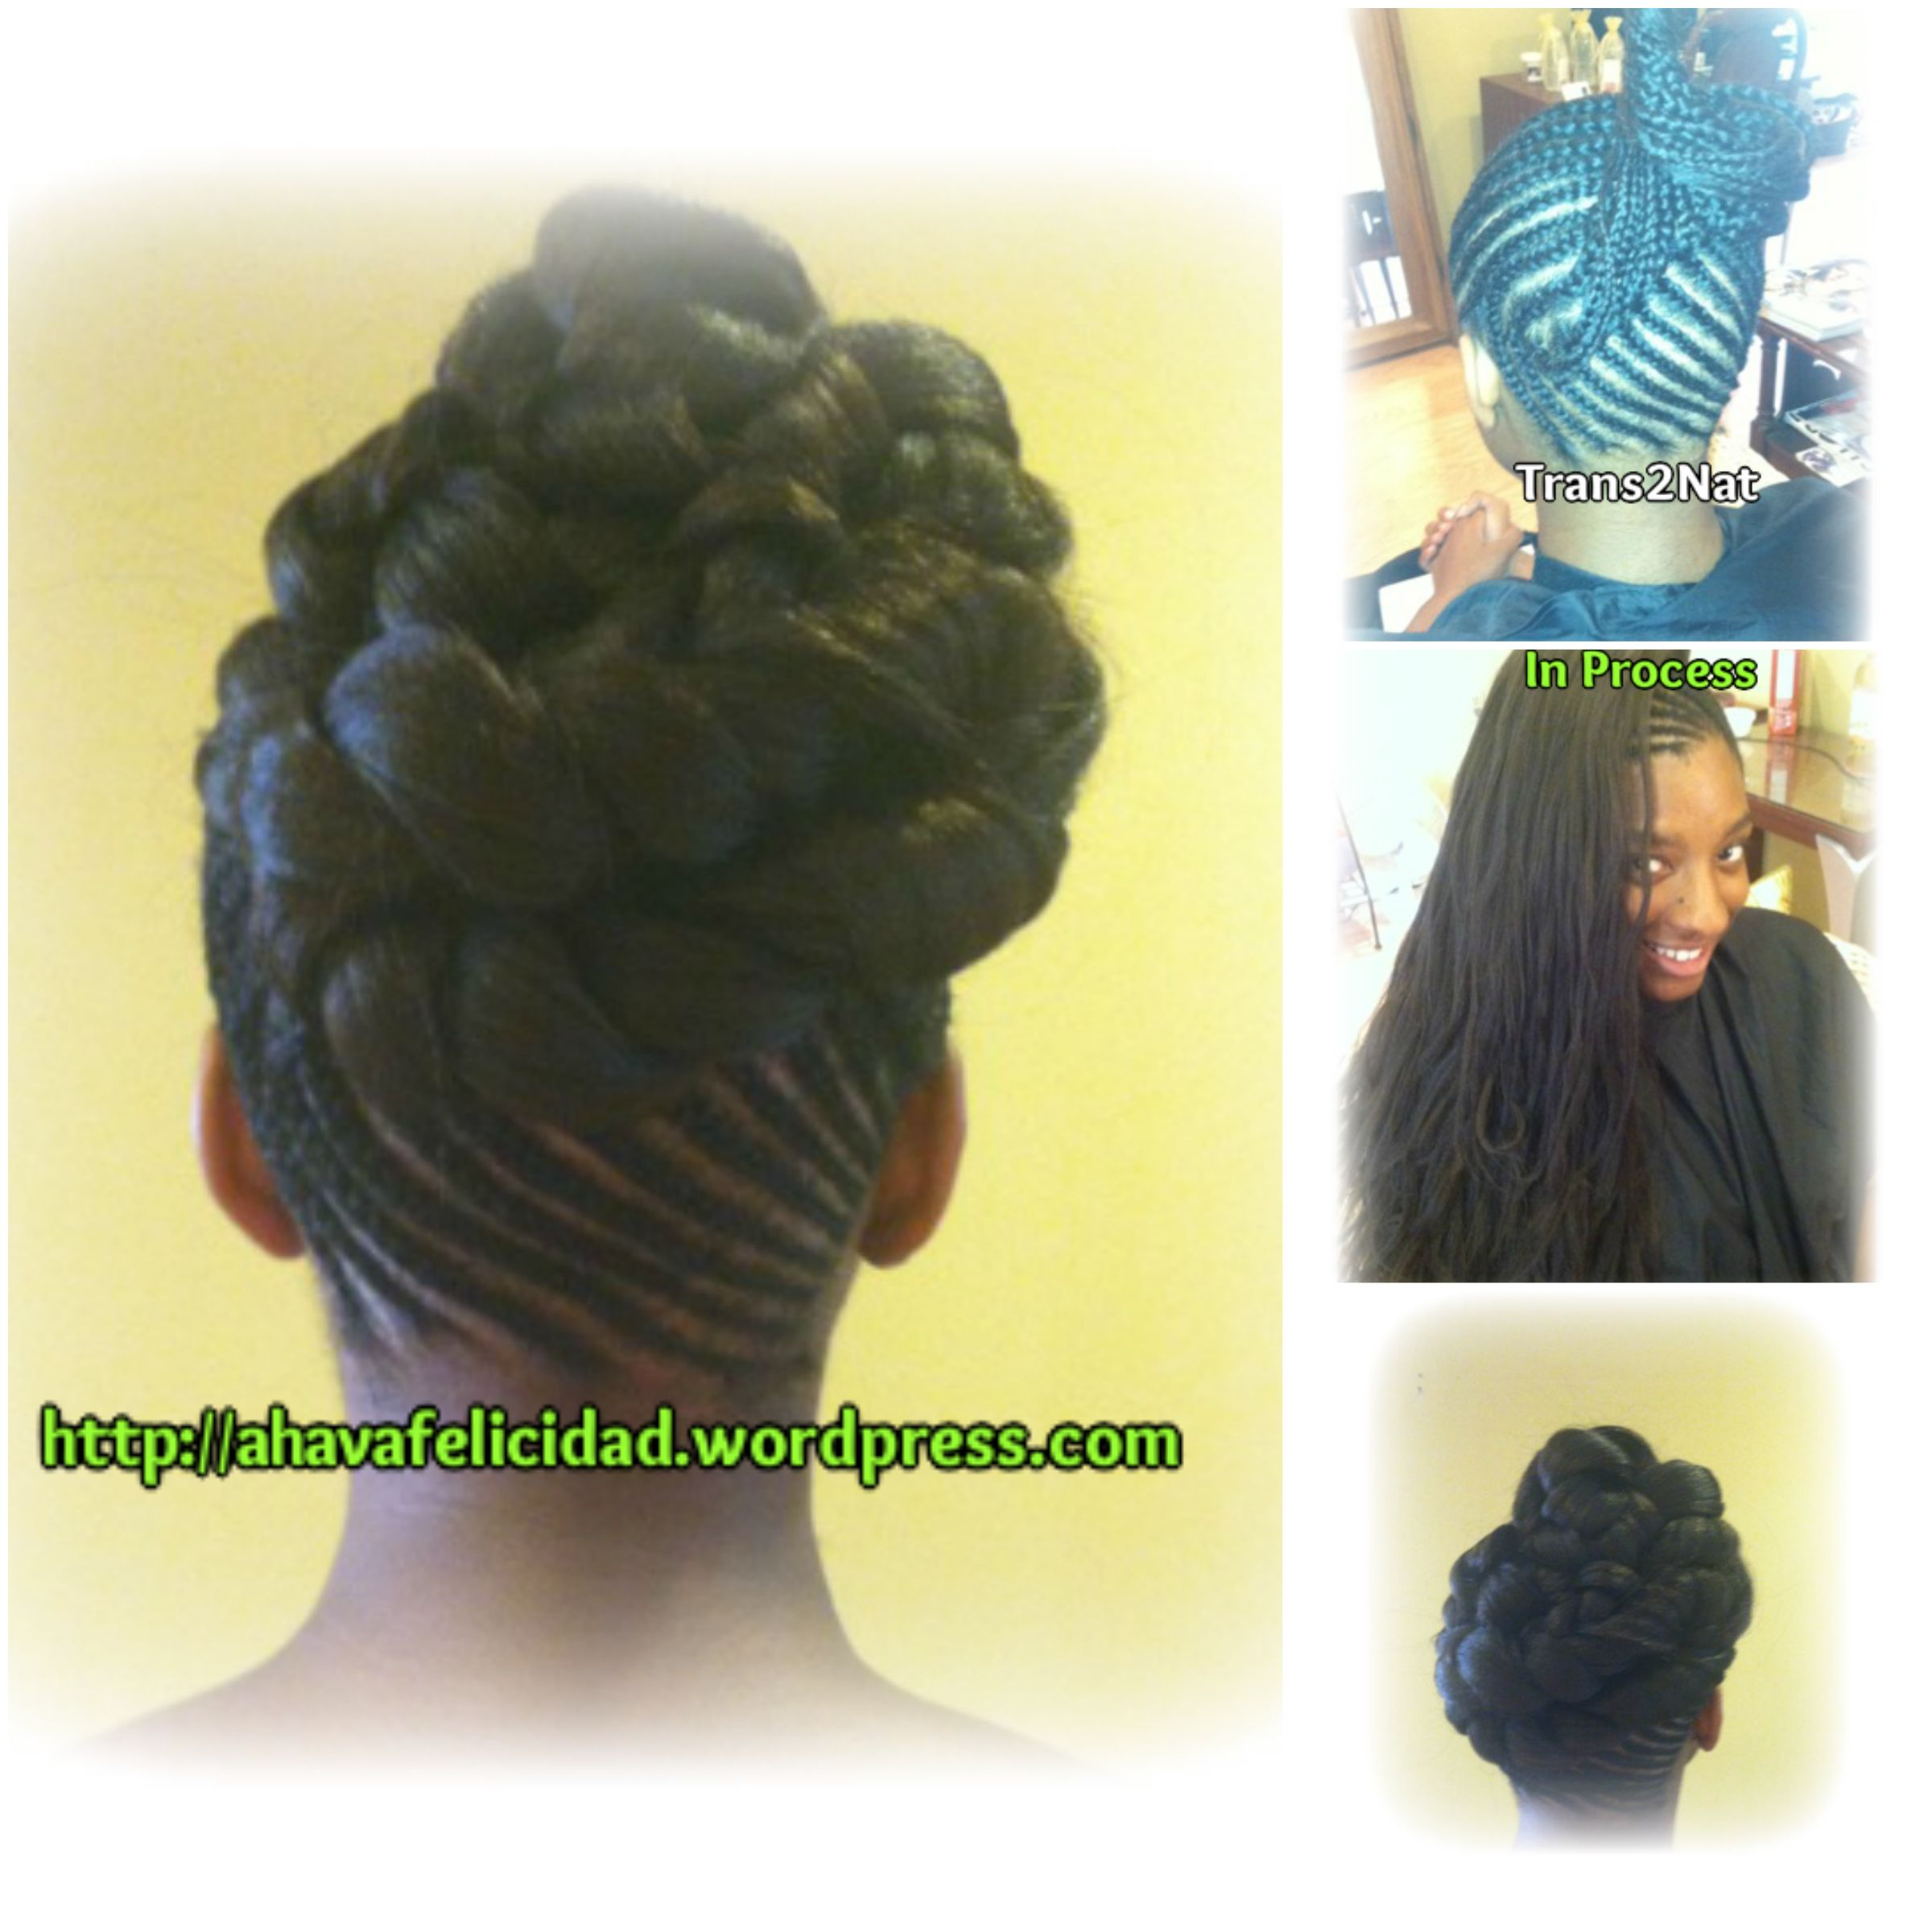 Crochet Hair Styles For Work : ... of her hair styles and hair healing sessions with her natural hair